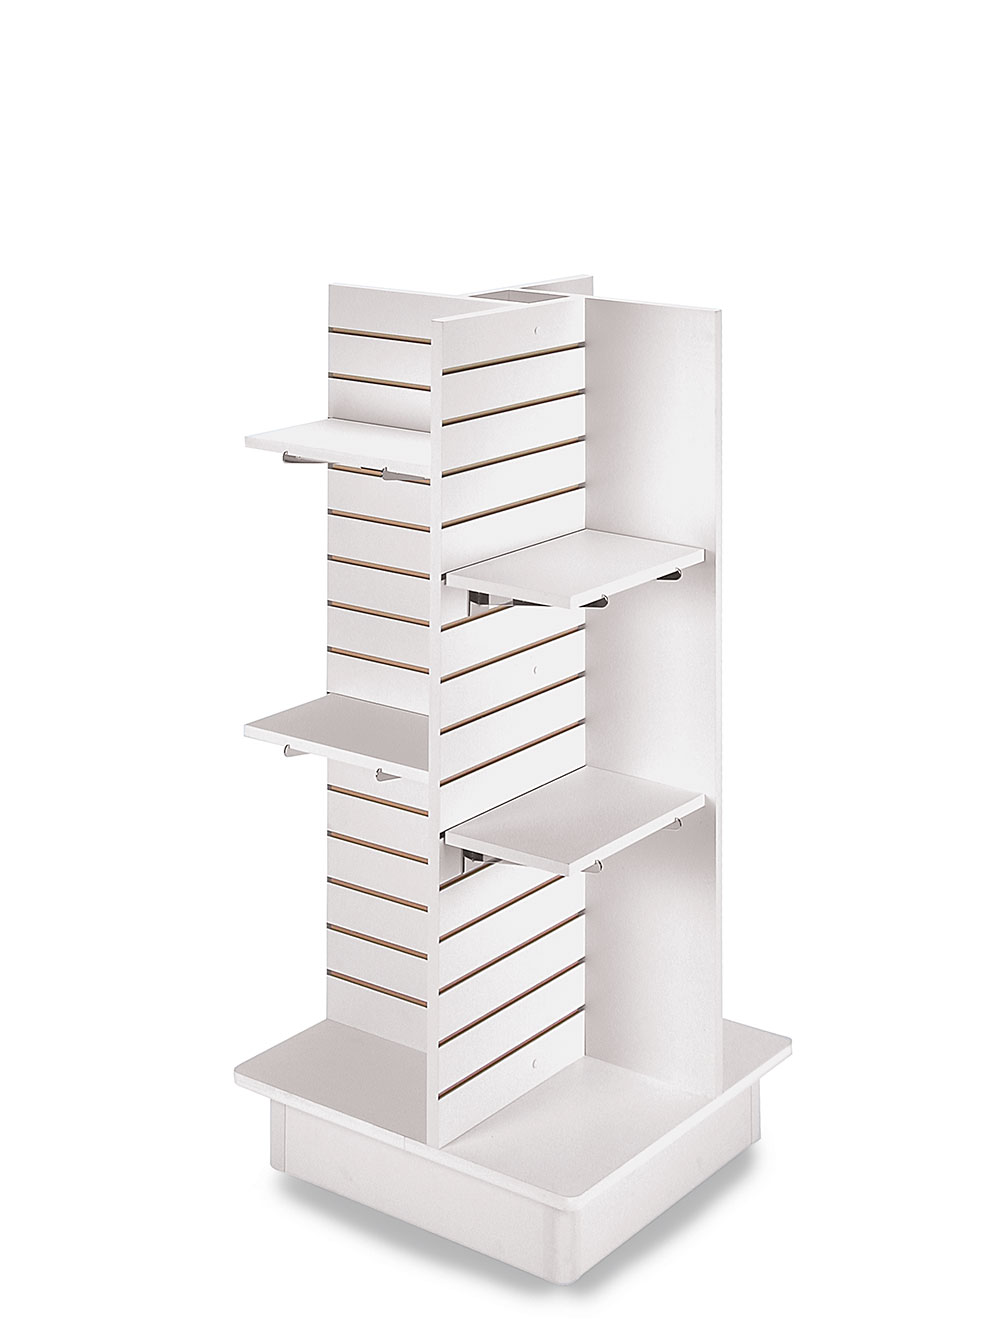 Details About 4 Panel White Slatwall Tower With Casters And Shelves 23 L X 23 W X 54 H